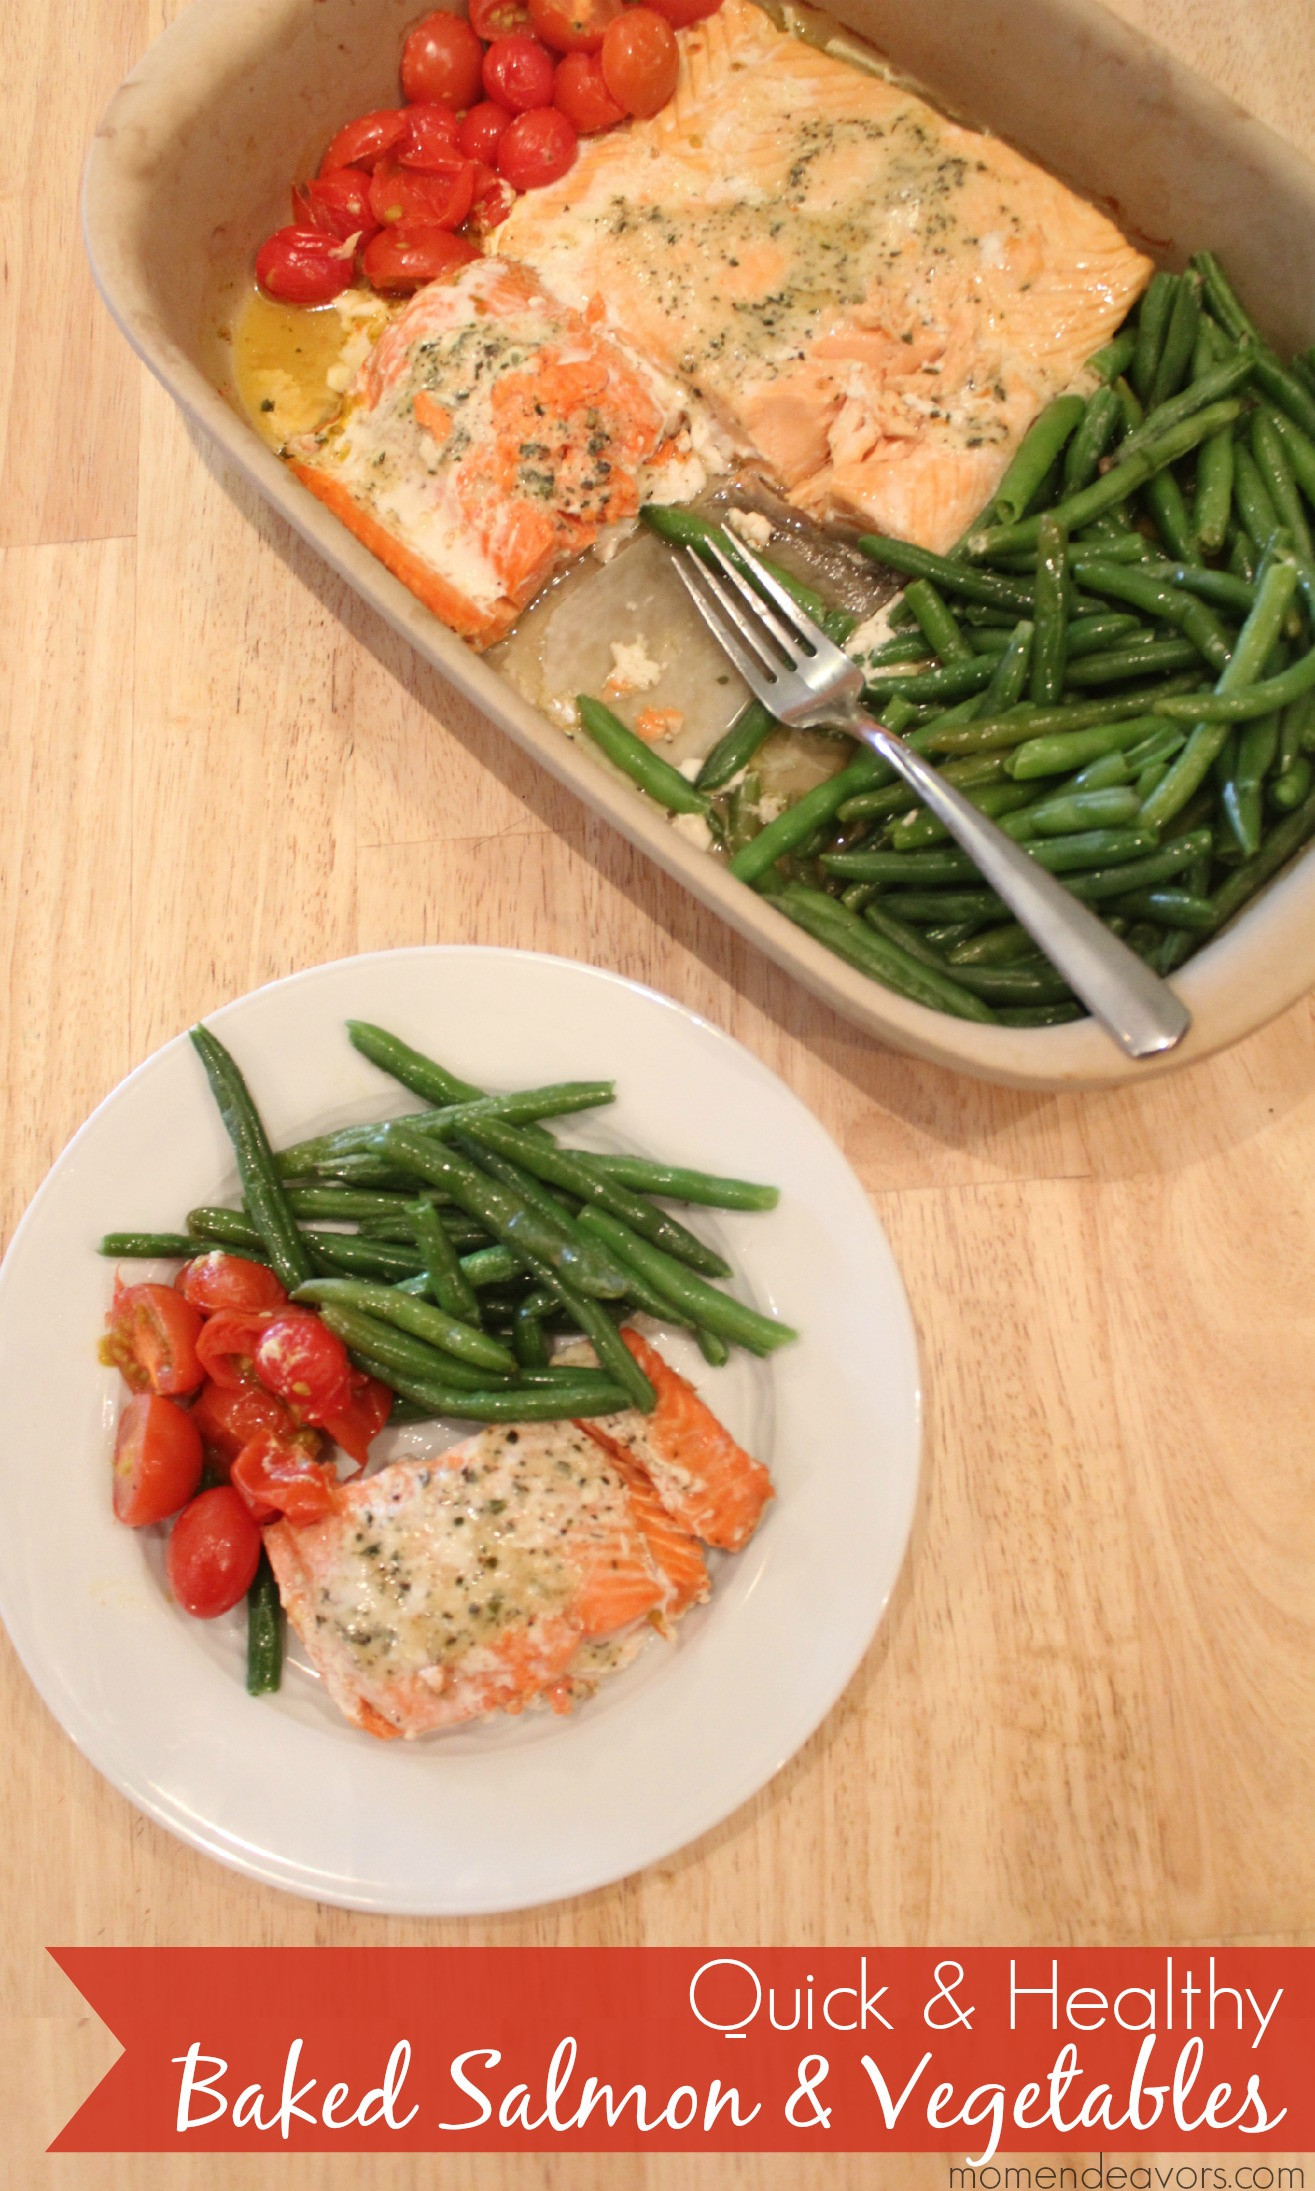 Quick Easy Healthy Dinner  Quick & Healthy Recipe e Pan Baked Salmon & Ve ables